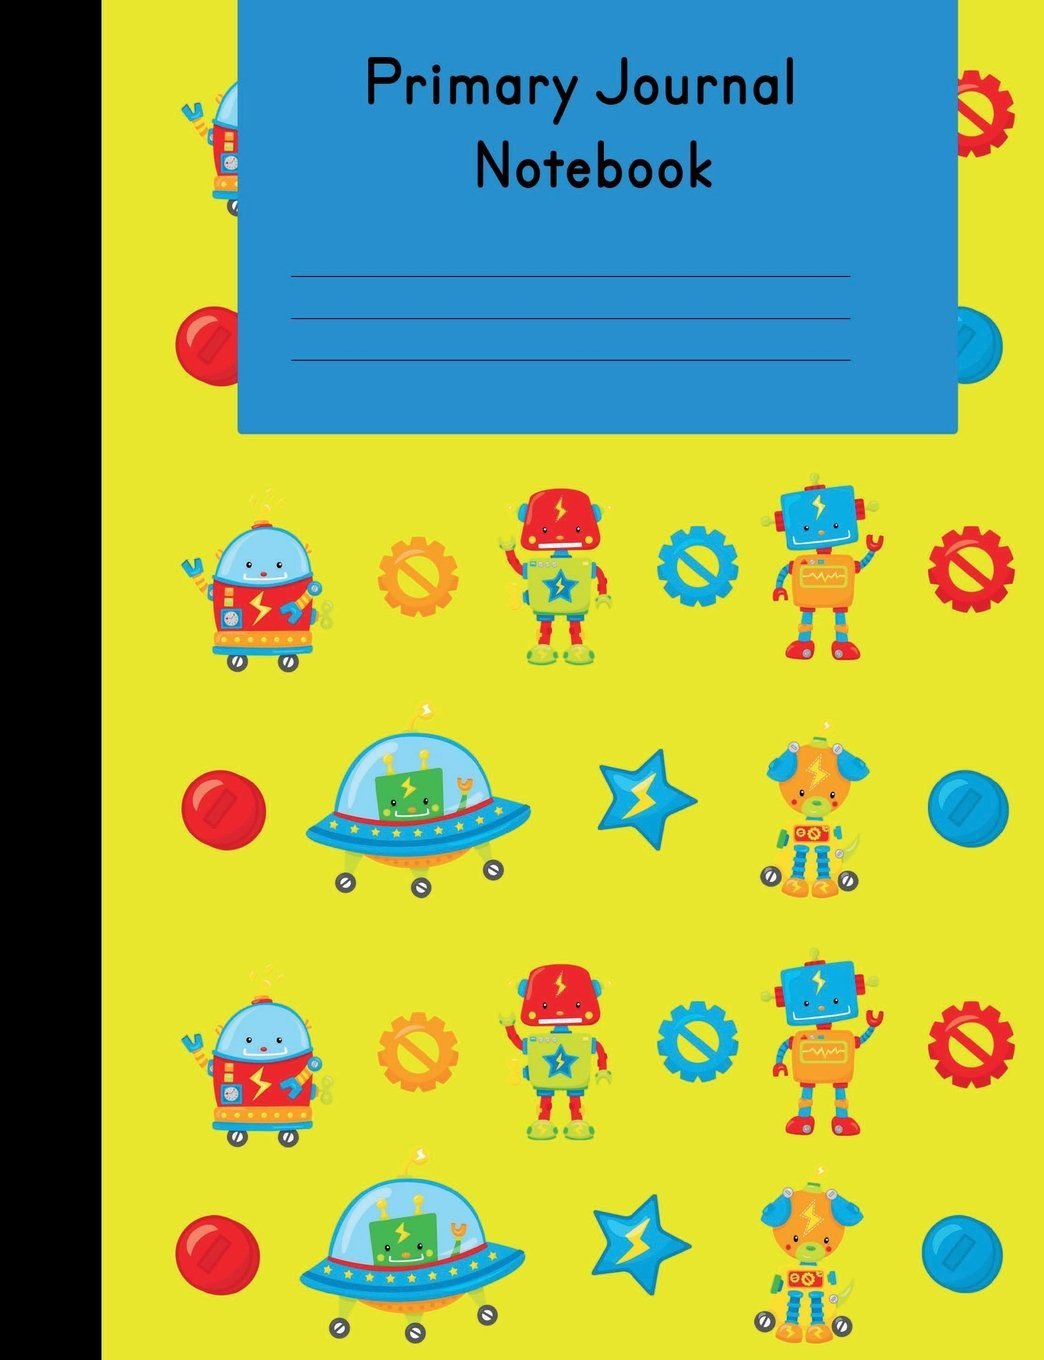 Primary Journal Notebook: Robot Story Composition and Illustration: School Grade Level K-2 Draw and Write, 7.44 x 9.69 100 Pages Bottom Half Dotted ... to Kindergarten First and Second Grades pdf